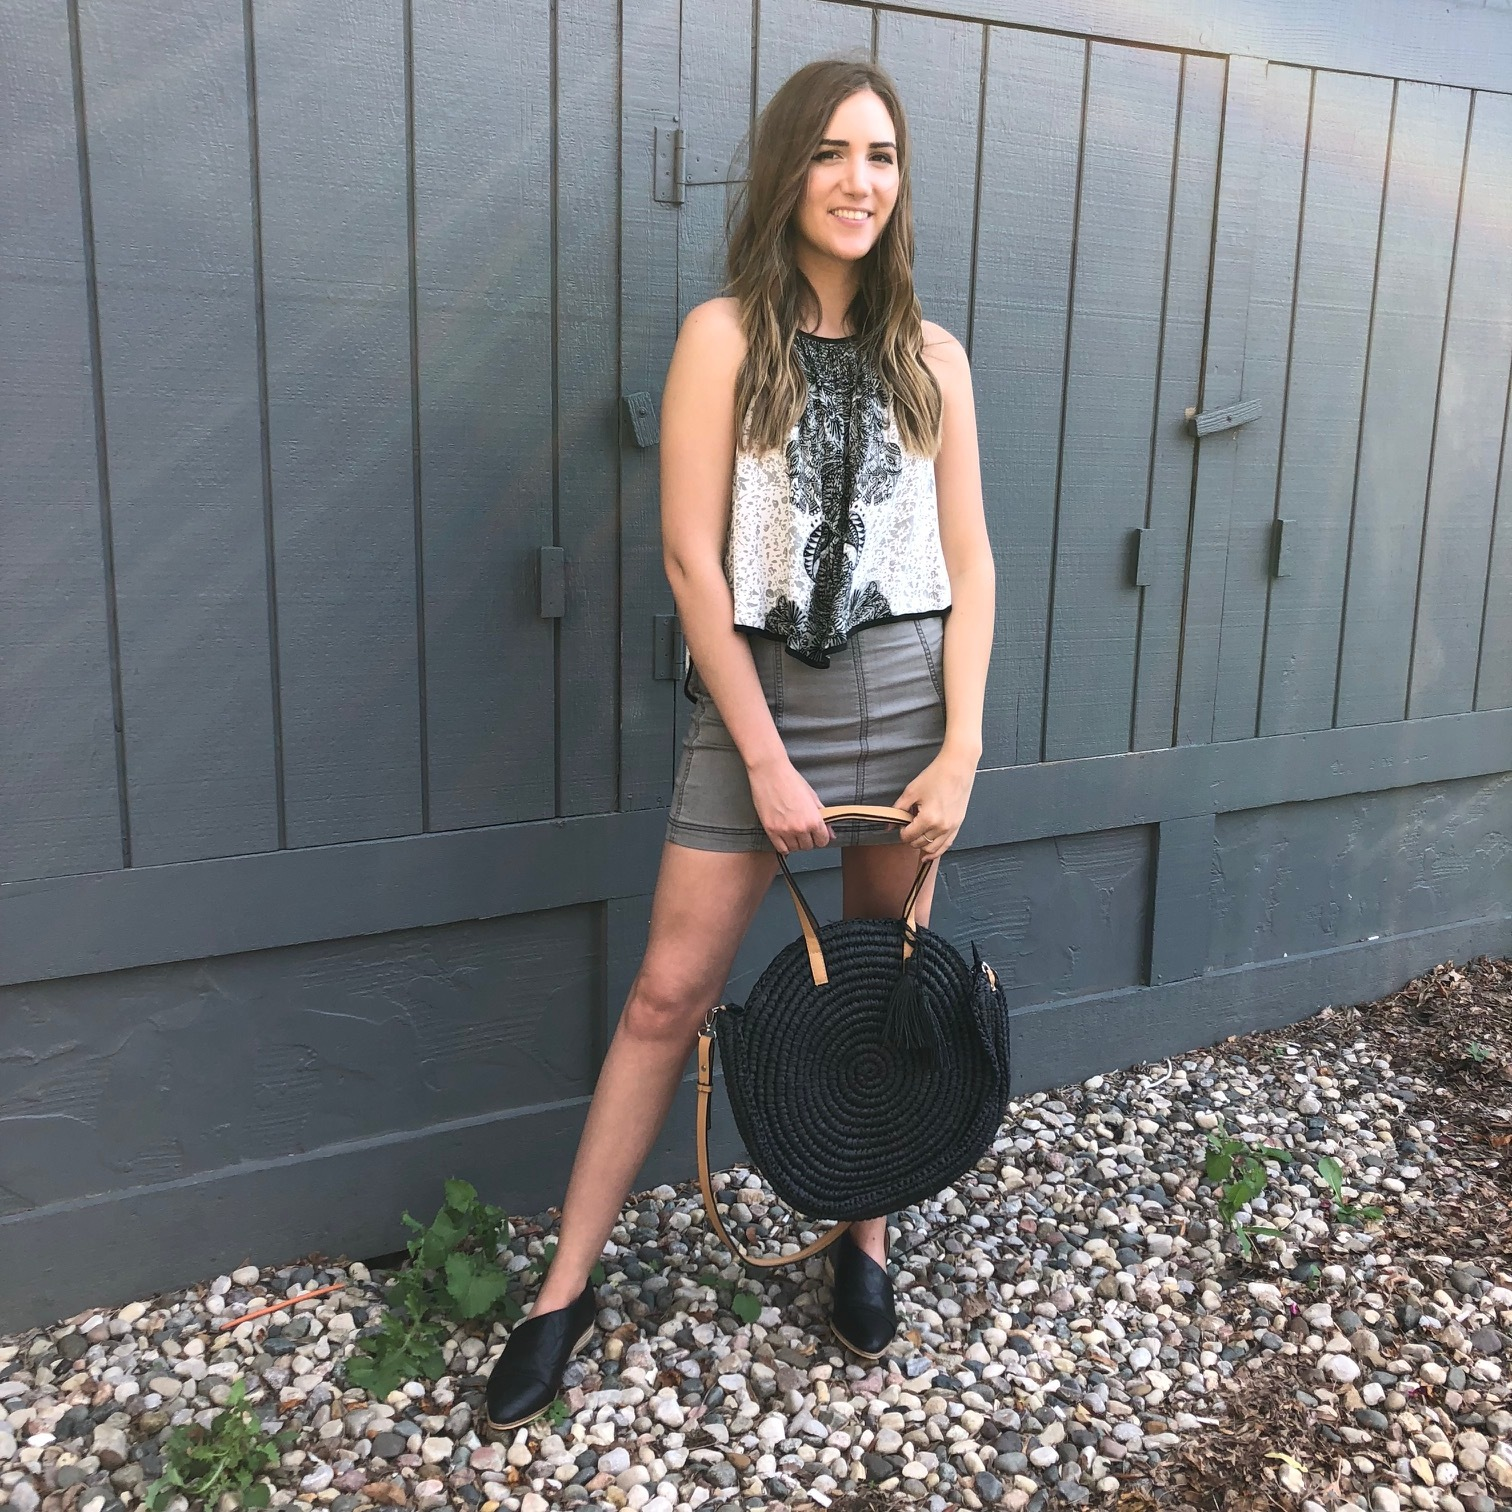 Free People Black and White Tank Top $68, Free People Modern Femme Mini $50, Straw Purse $42,Black Sidecut Loafers $42